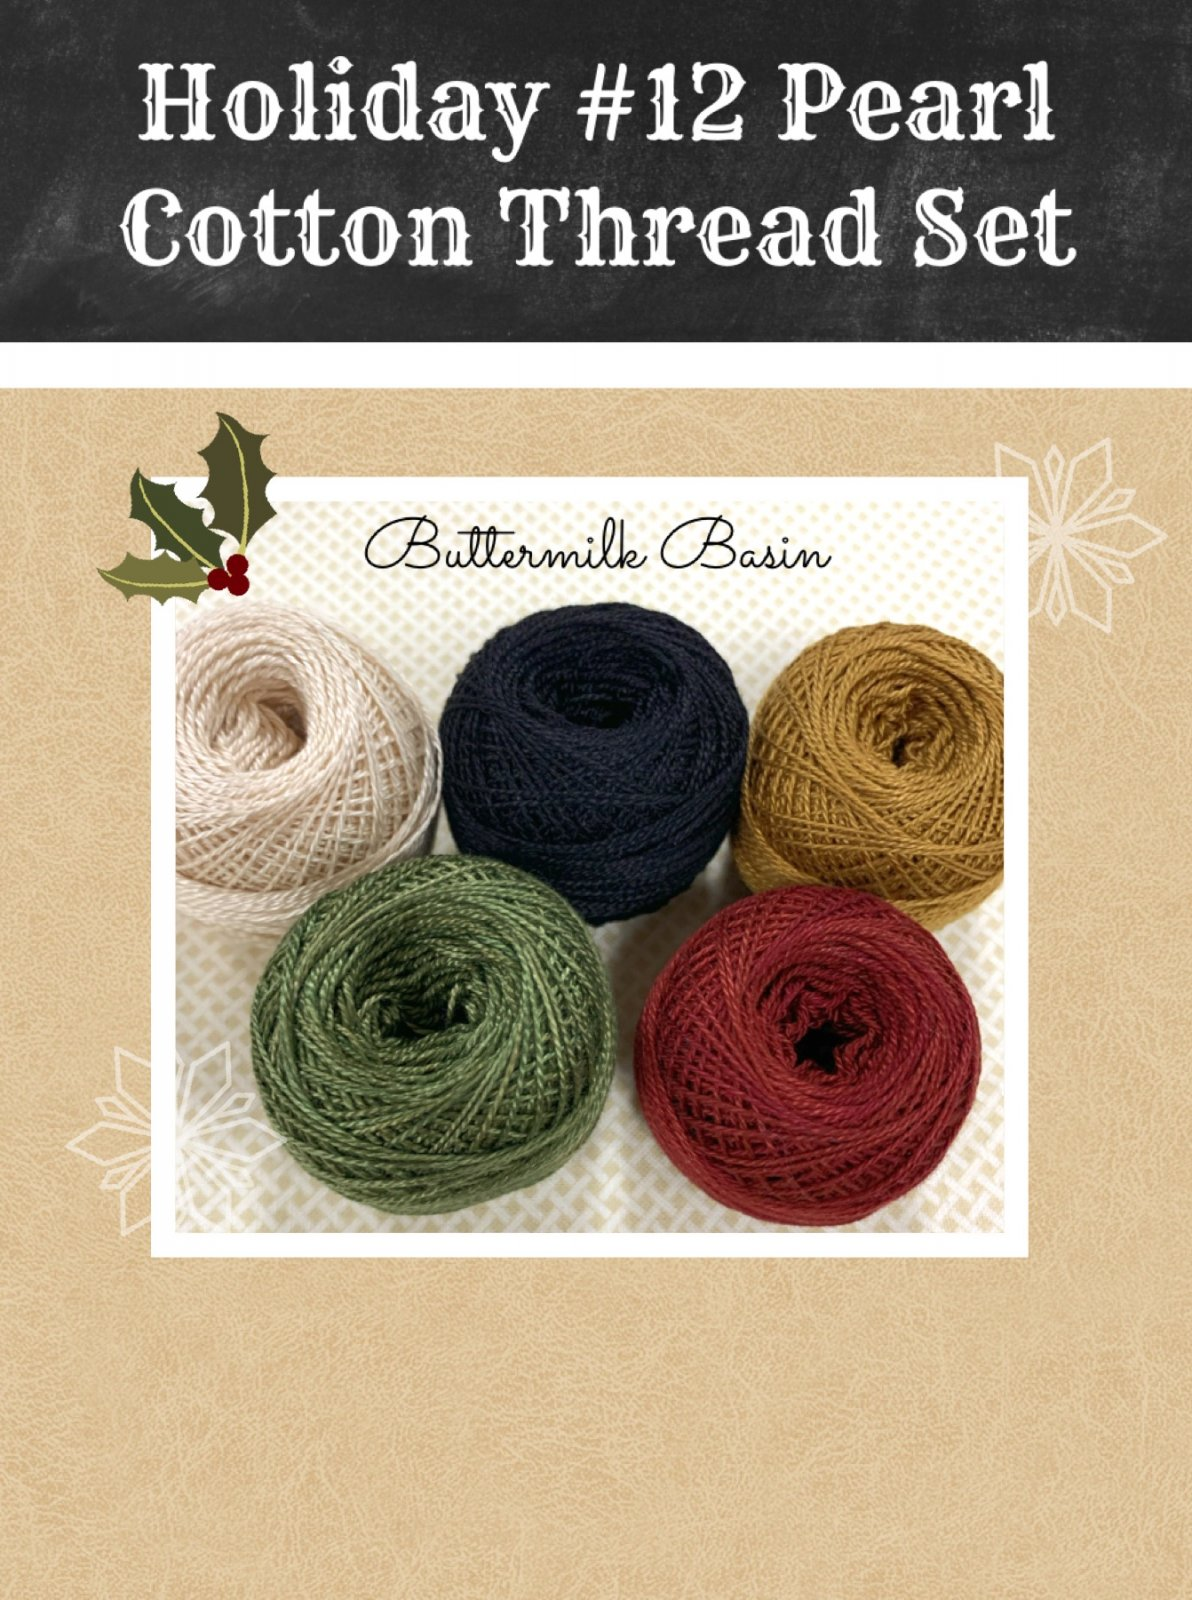 Holiday #12 Pearl Cotton Thread Set